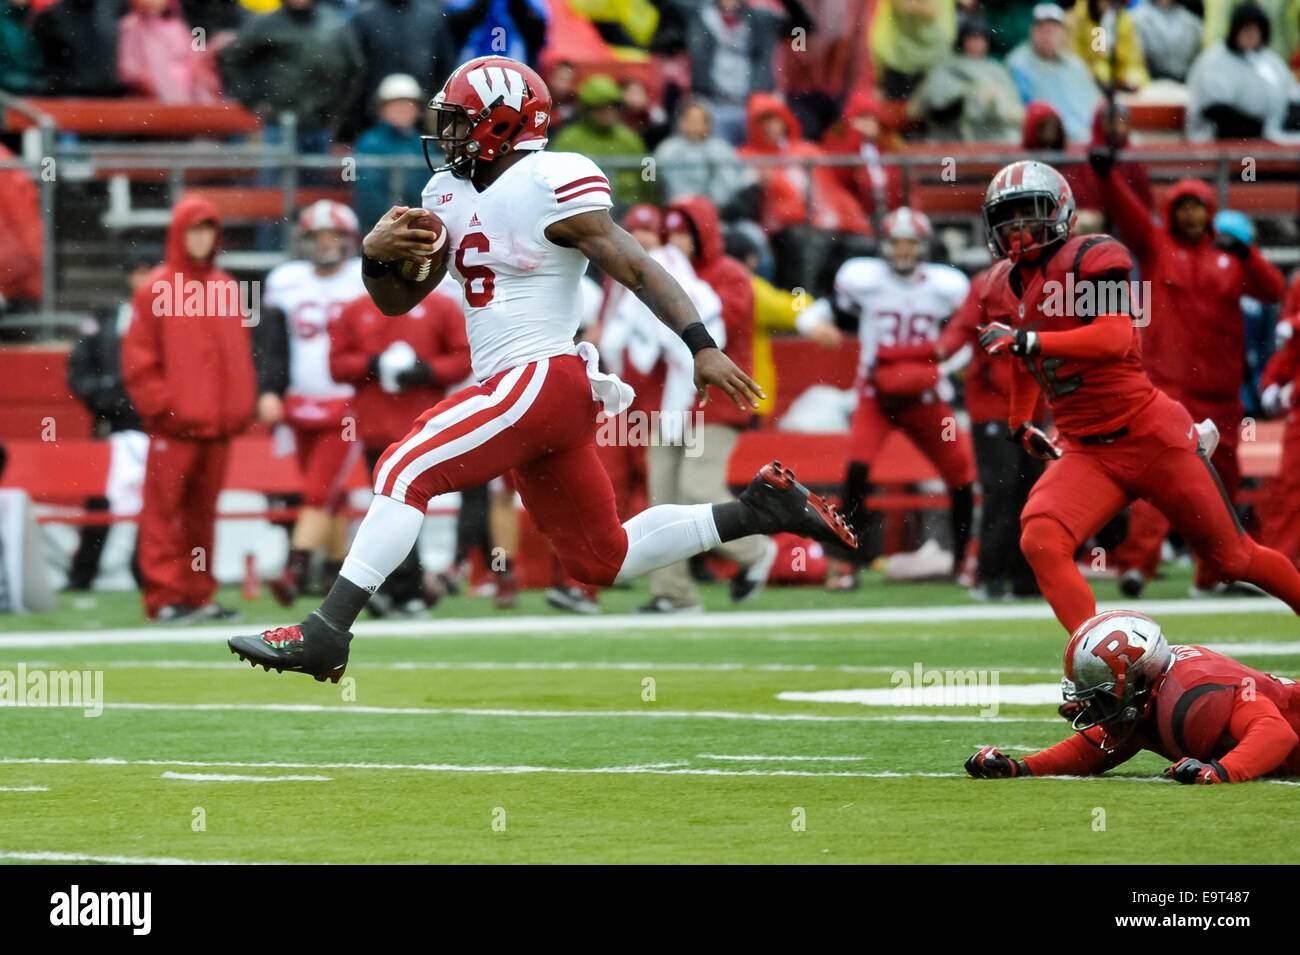 Piscataway, New Jersey, USA. 1st Nov, 2014. Wisconsin running back, COREY CLEMENT (6), breaks free from the Rutgers - Stock Image